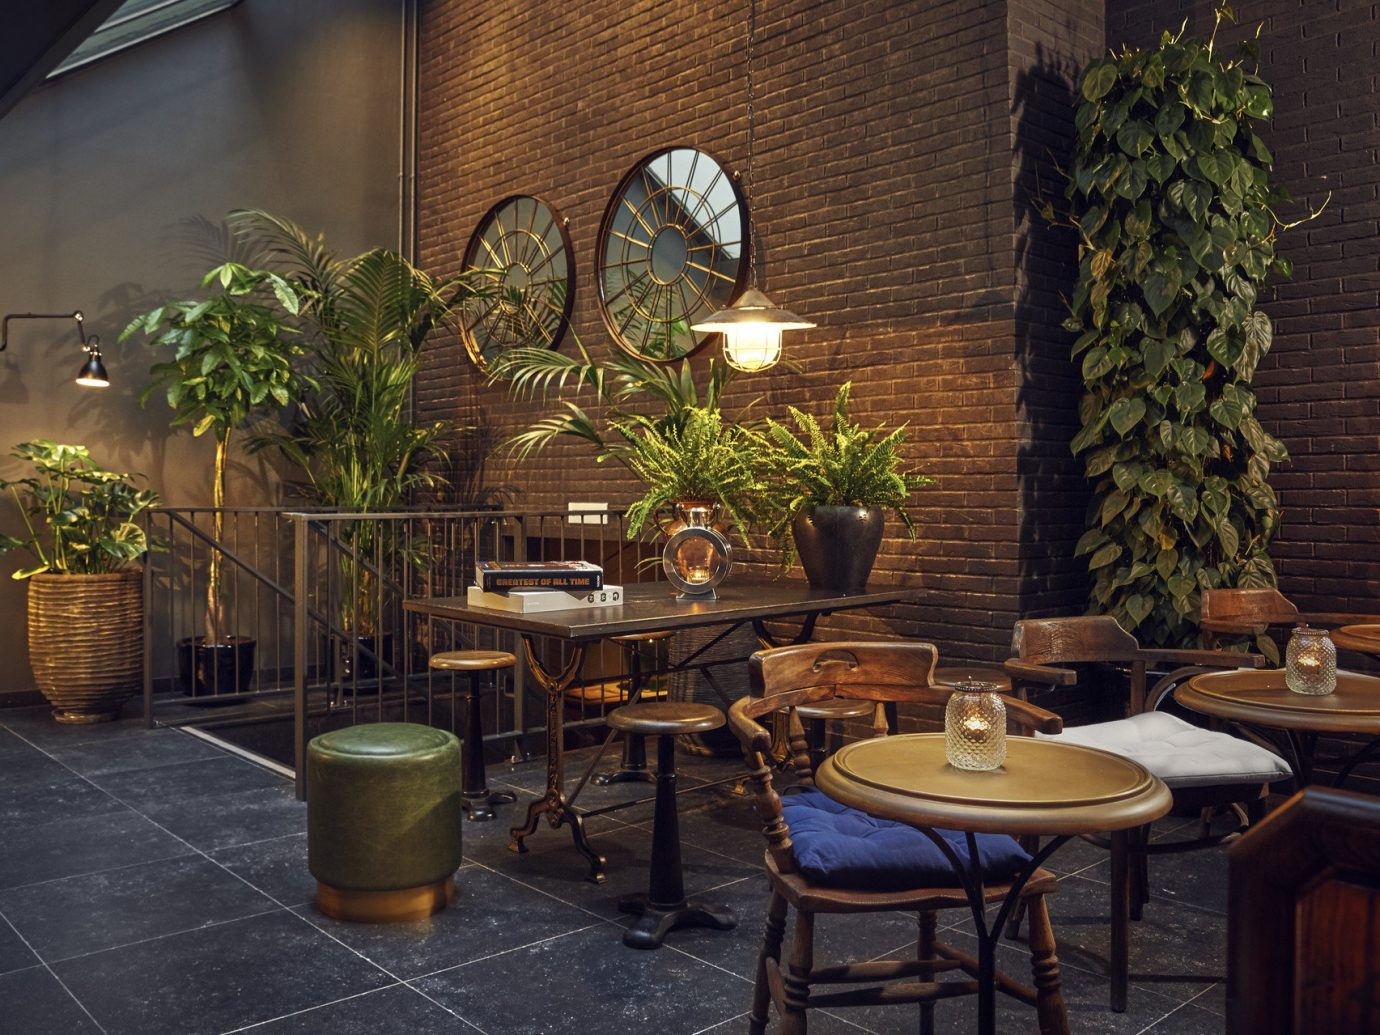 Amsterdam Hotels The Netherlands room Lobby restaurant estate interior design home dining room lighting Courtyard plant furniture